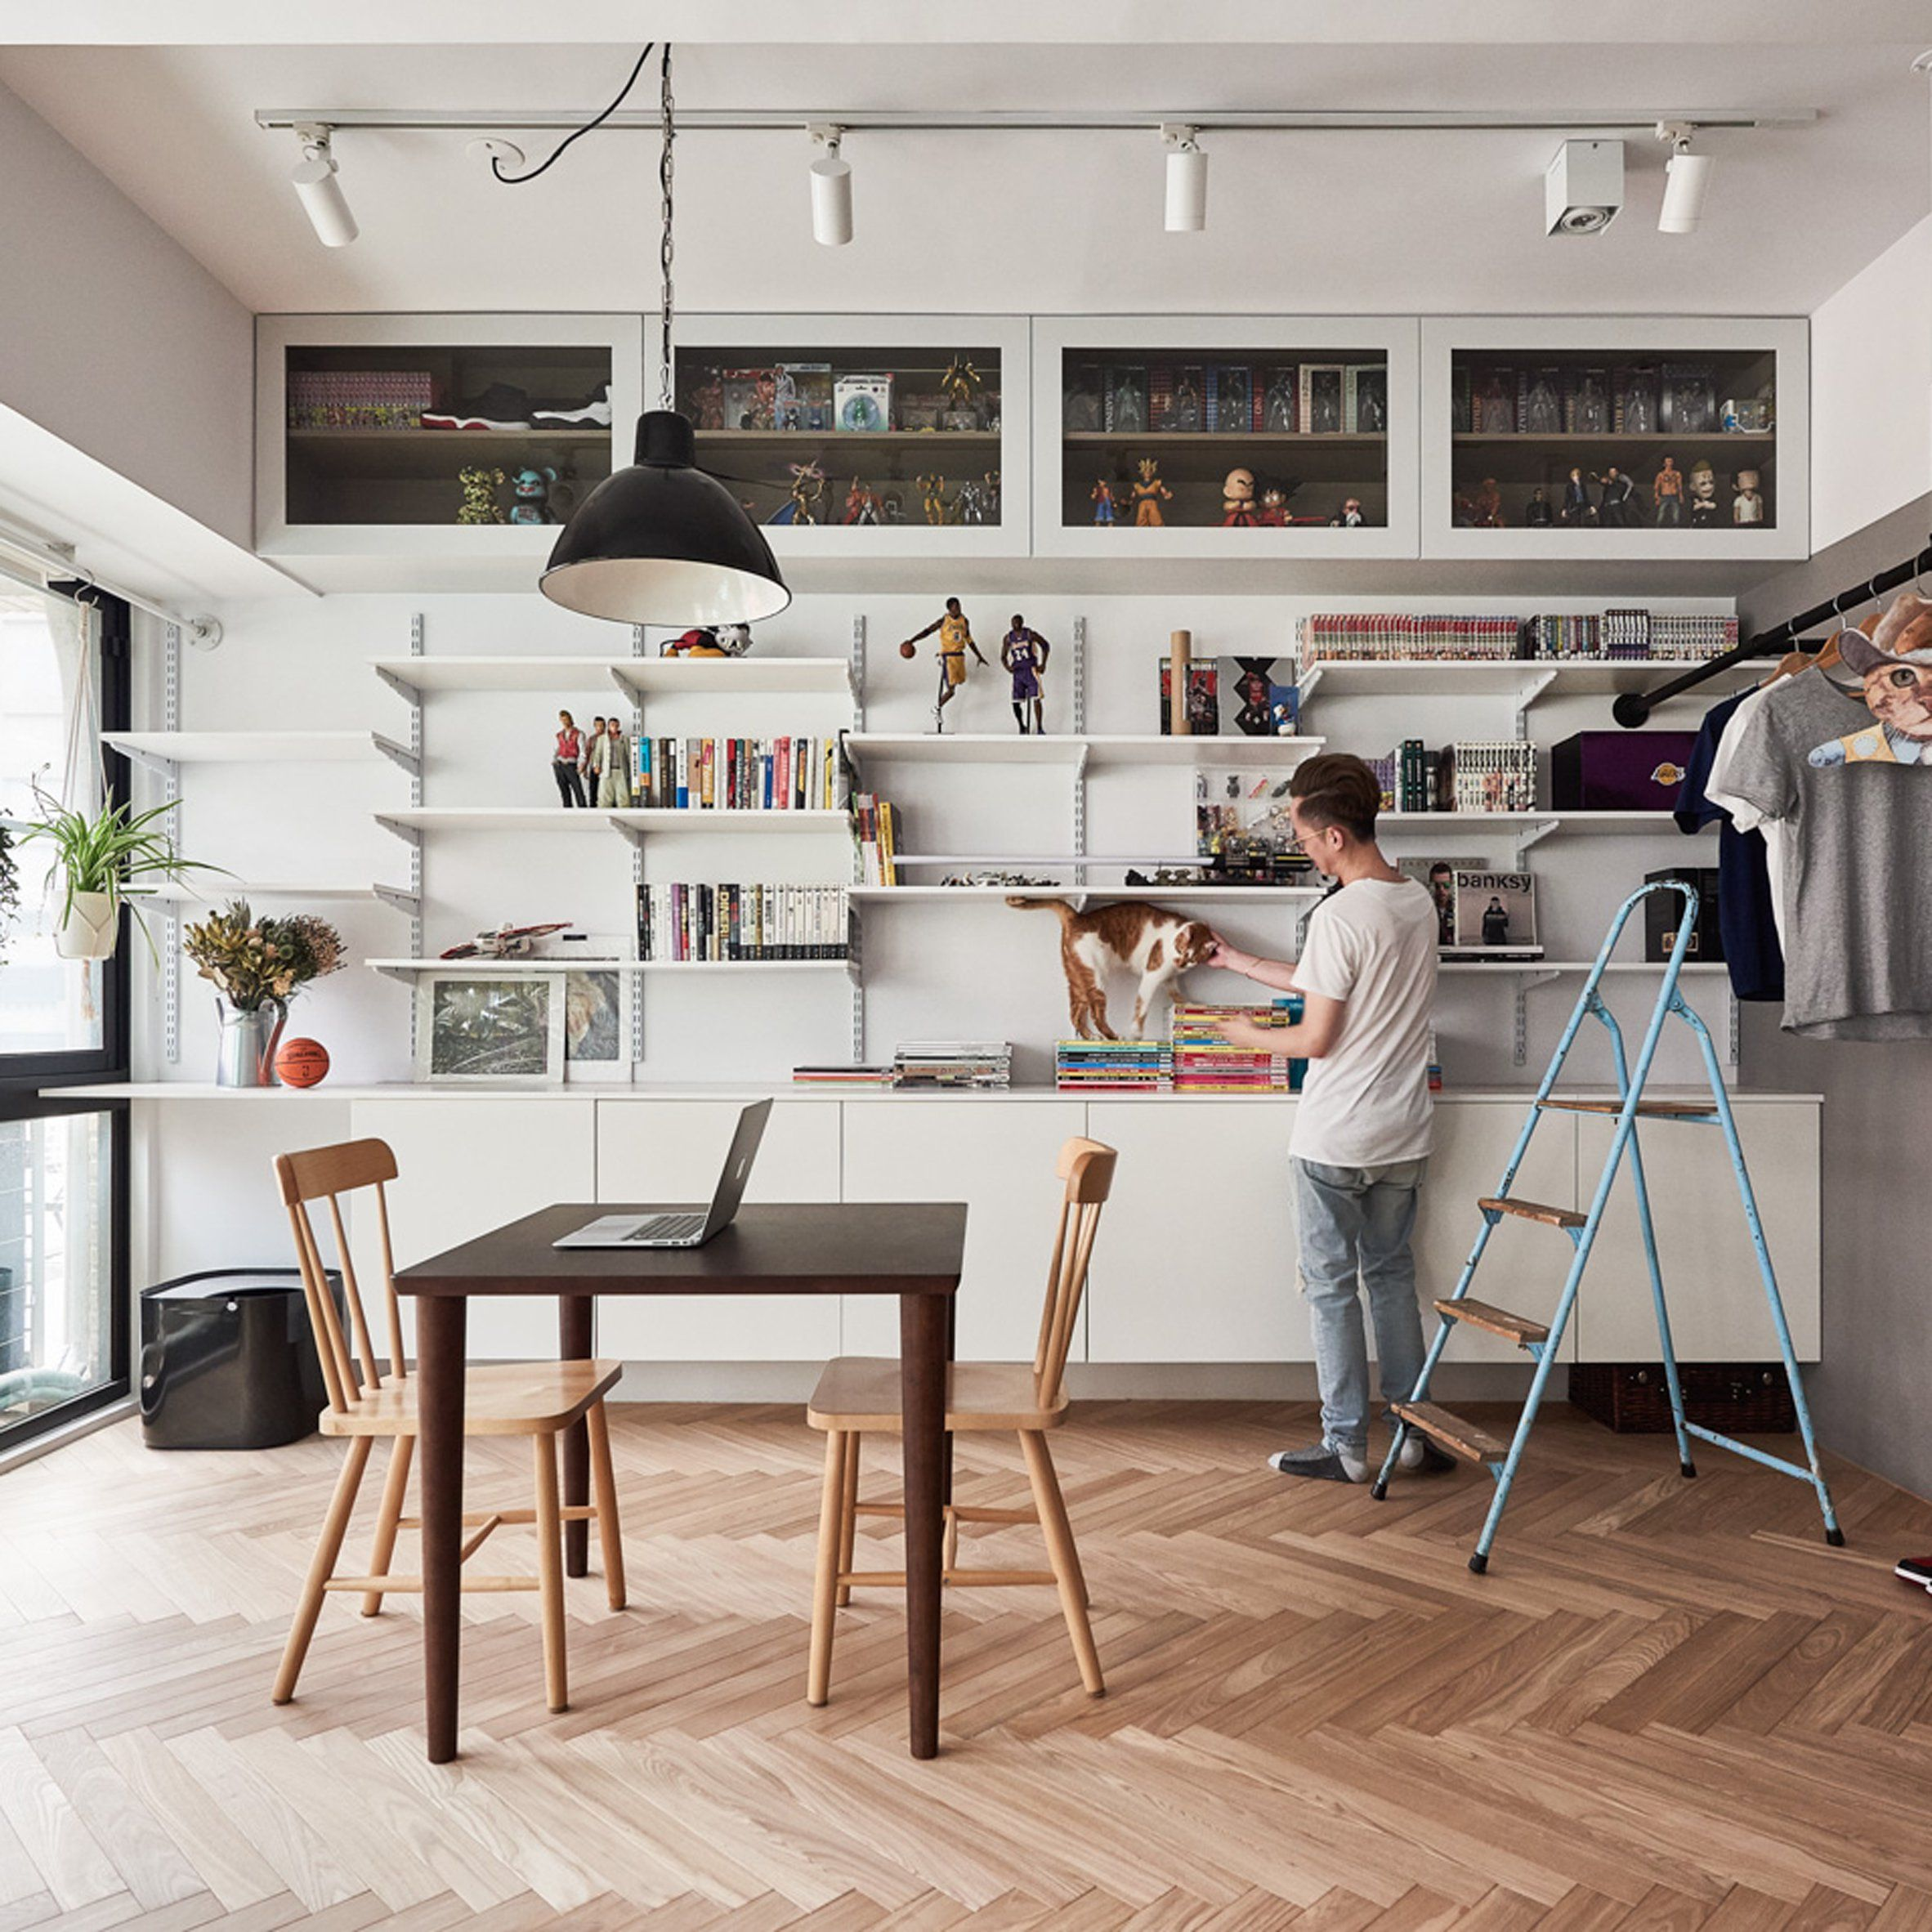 Amazing Taiwanese Design Practice ST Studio Has Opened Up The Interior Of This  Taipei Apartment To Create A Flexible Space For The Owner And His Two Cats.